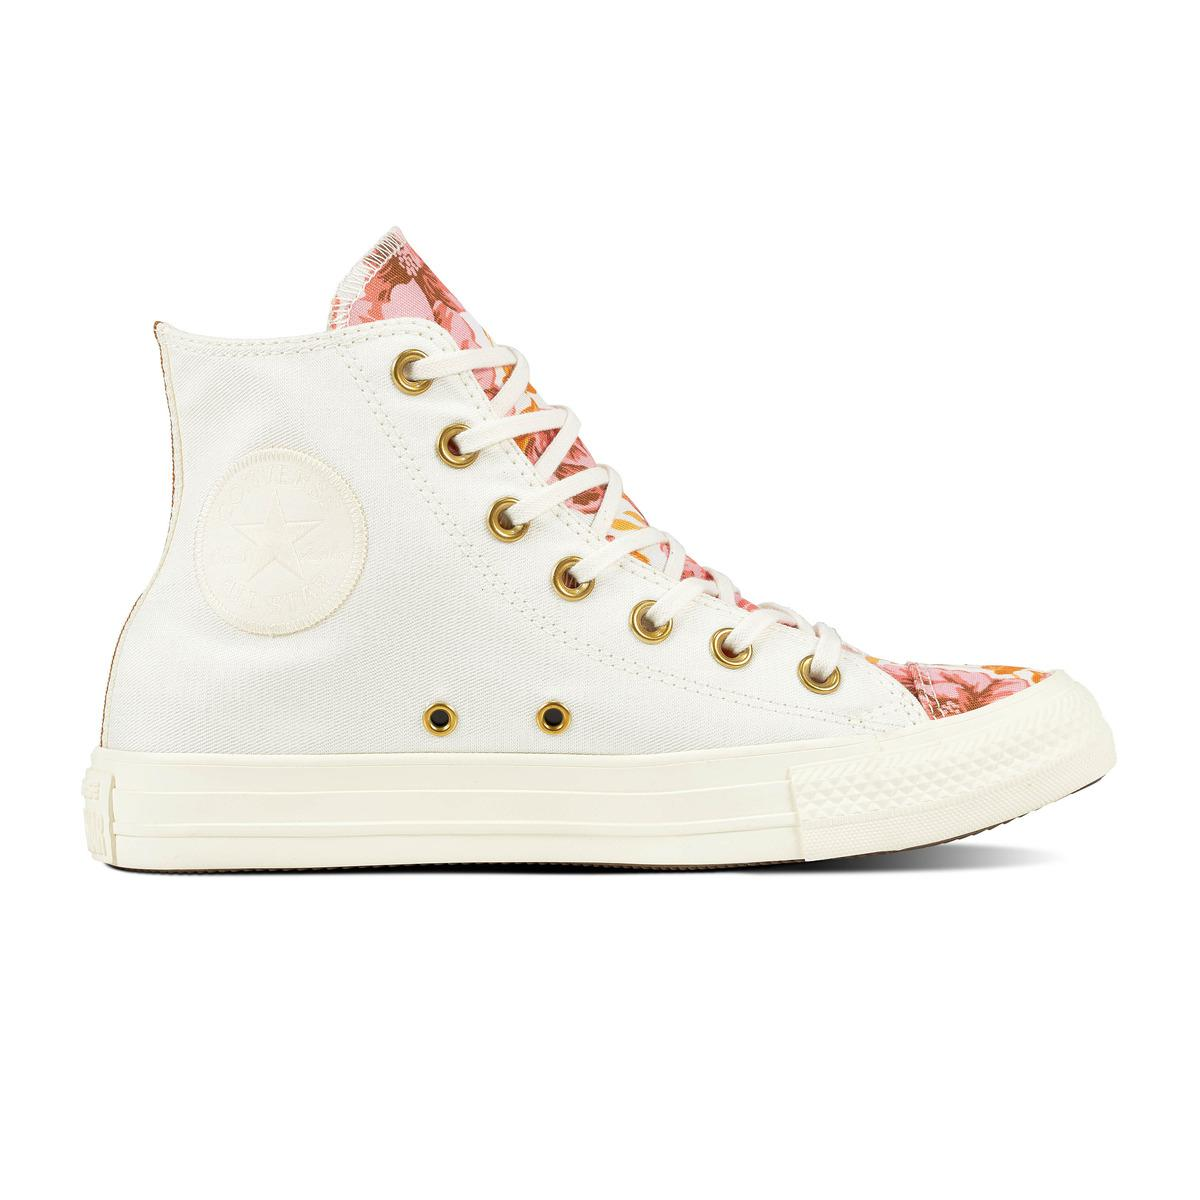 5af861da9864 Converse Chuck Taylor All Star Parkway Floral Hi Casual Trainers in ...